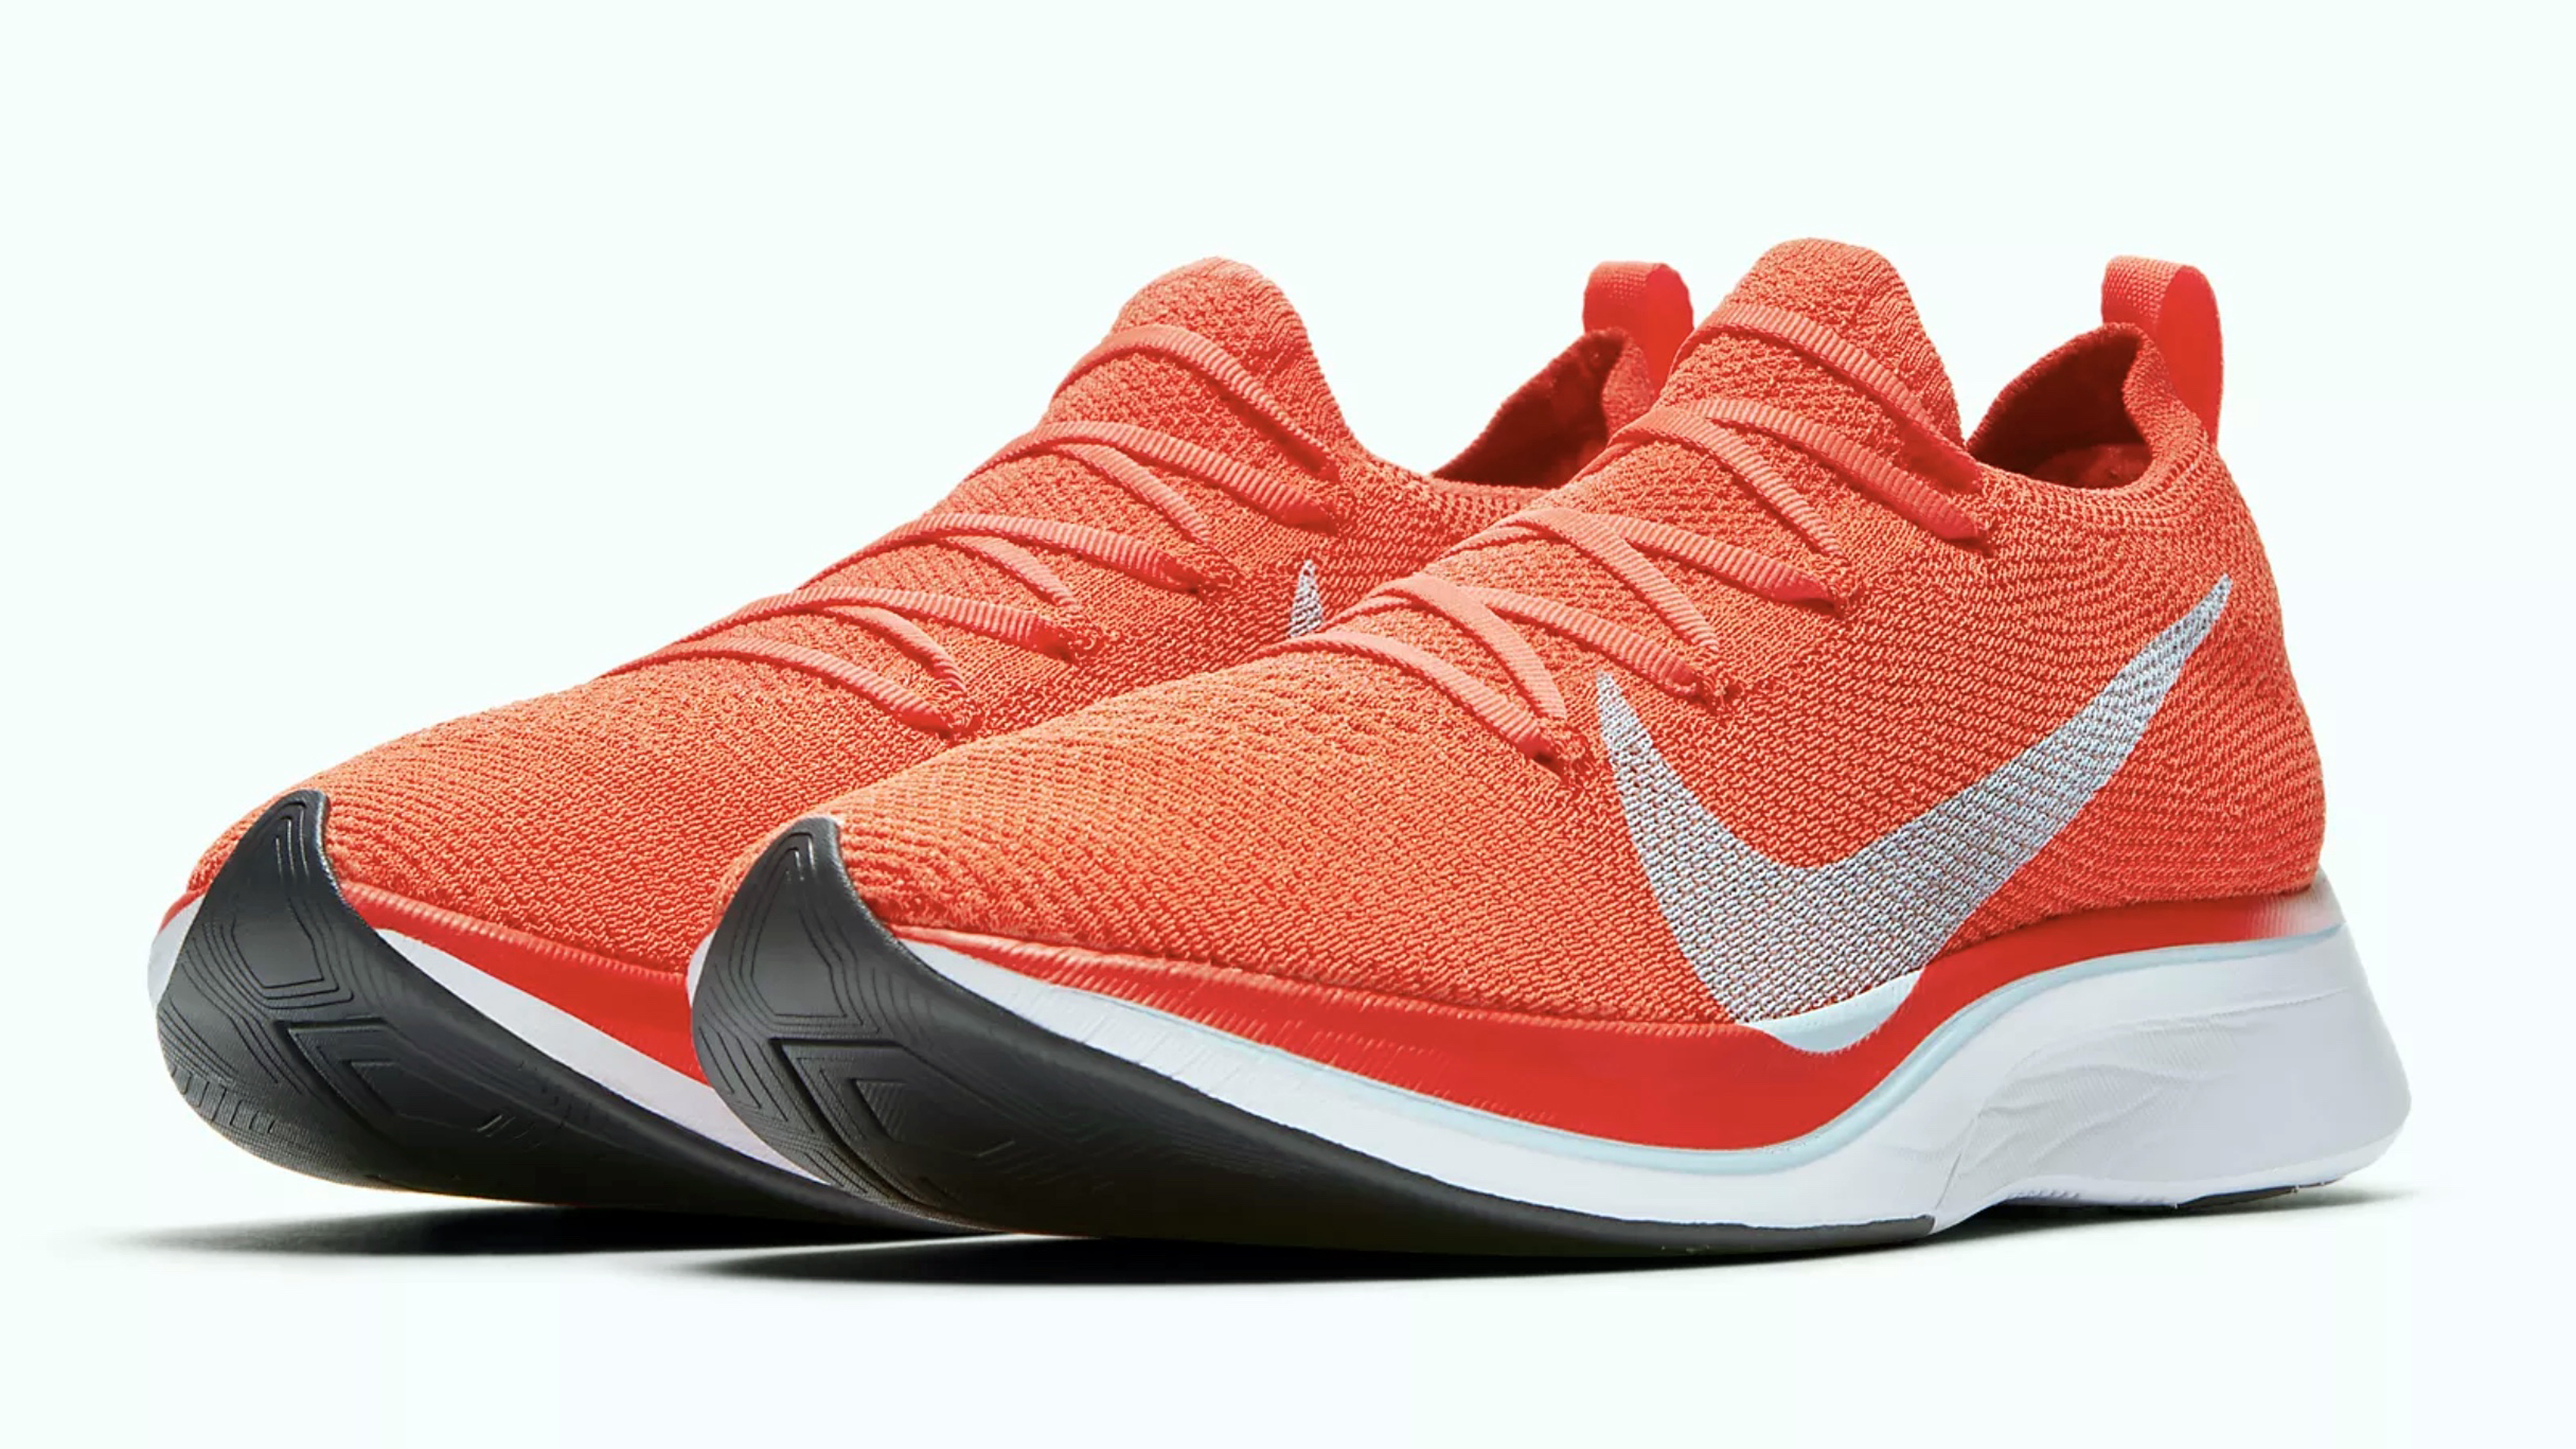 Nike Vapourfly 4% Flyknit is in stock – but running out fast  5407876f7